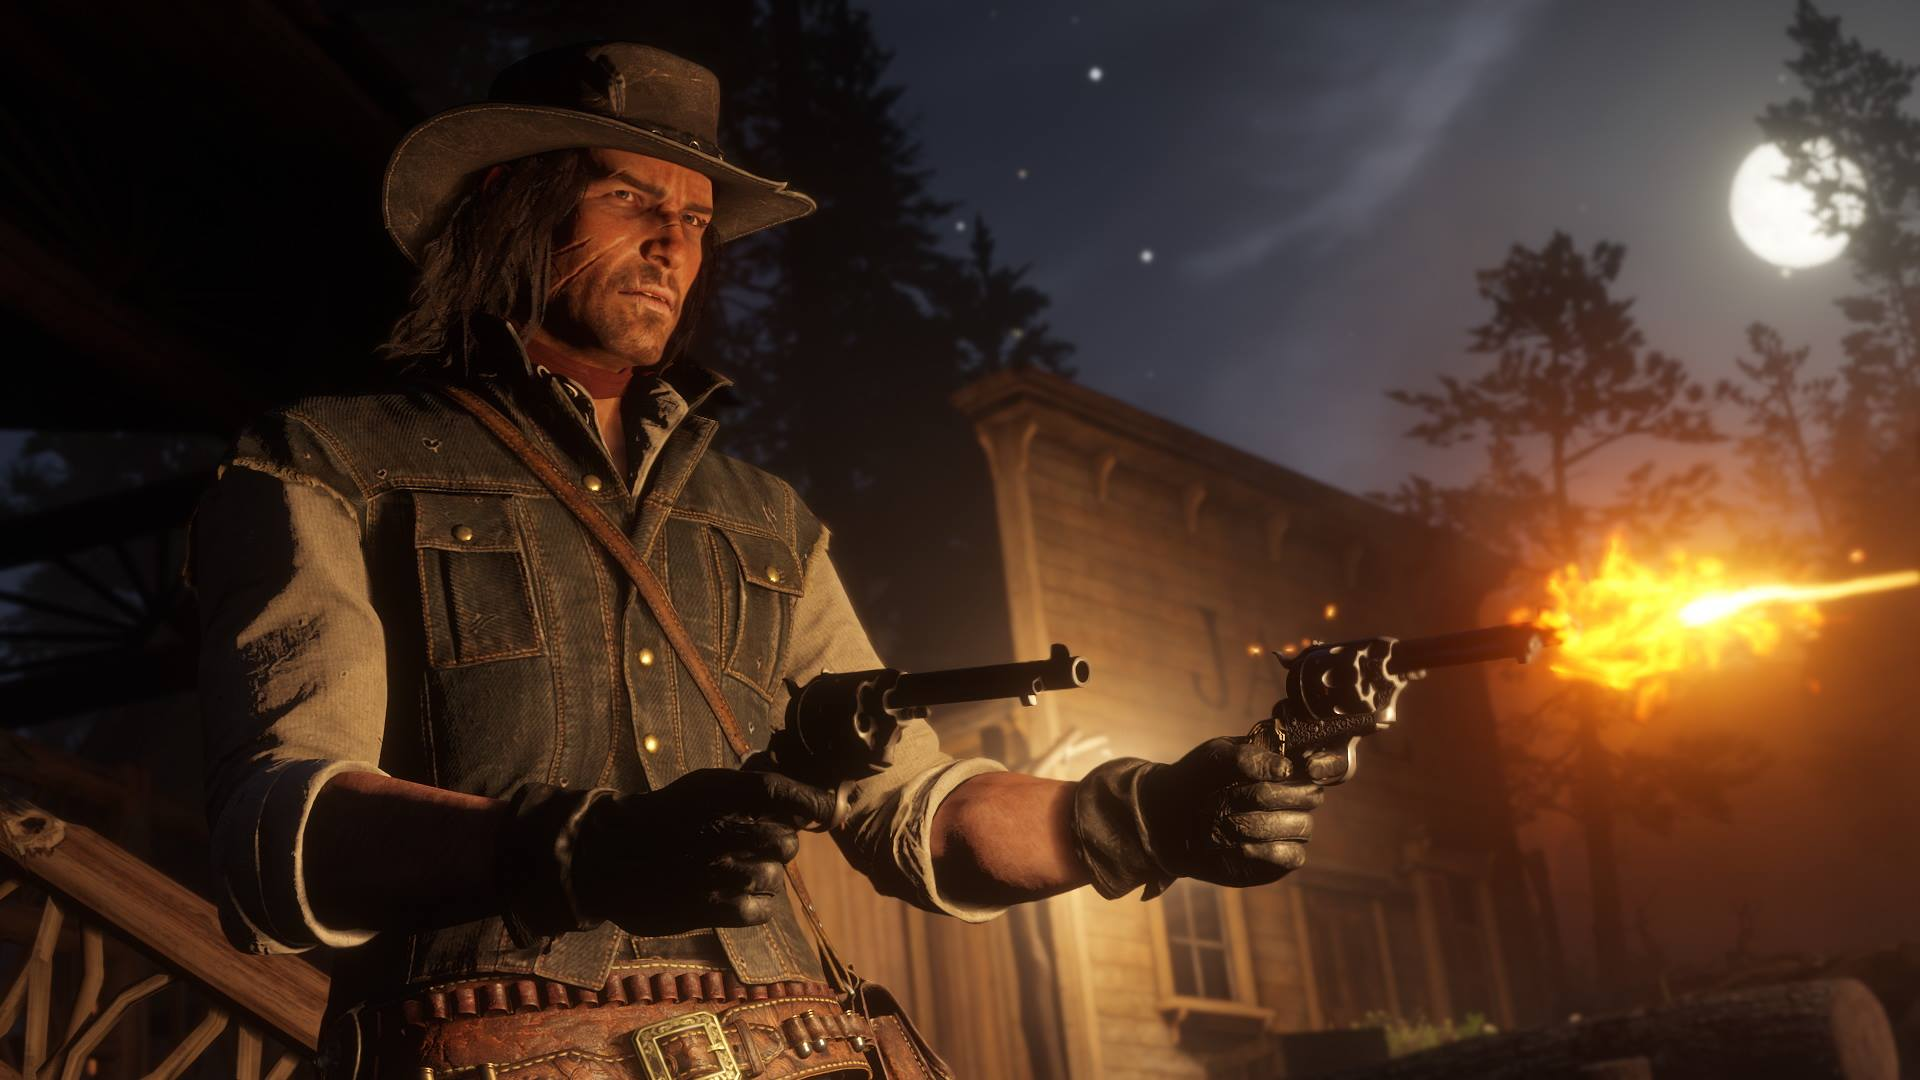 take two, red dead redemption, john marston, rdr2, konzol, rockstar games, videojáték, tv műsor, fix tv, game on ádám, call of duty, black ops 4, multiplayer beta